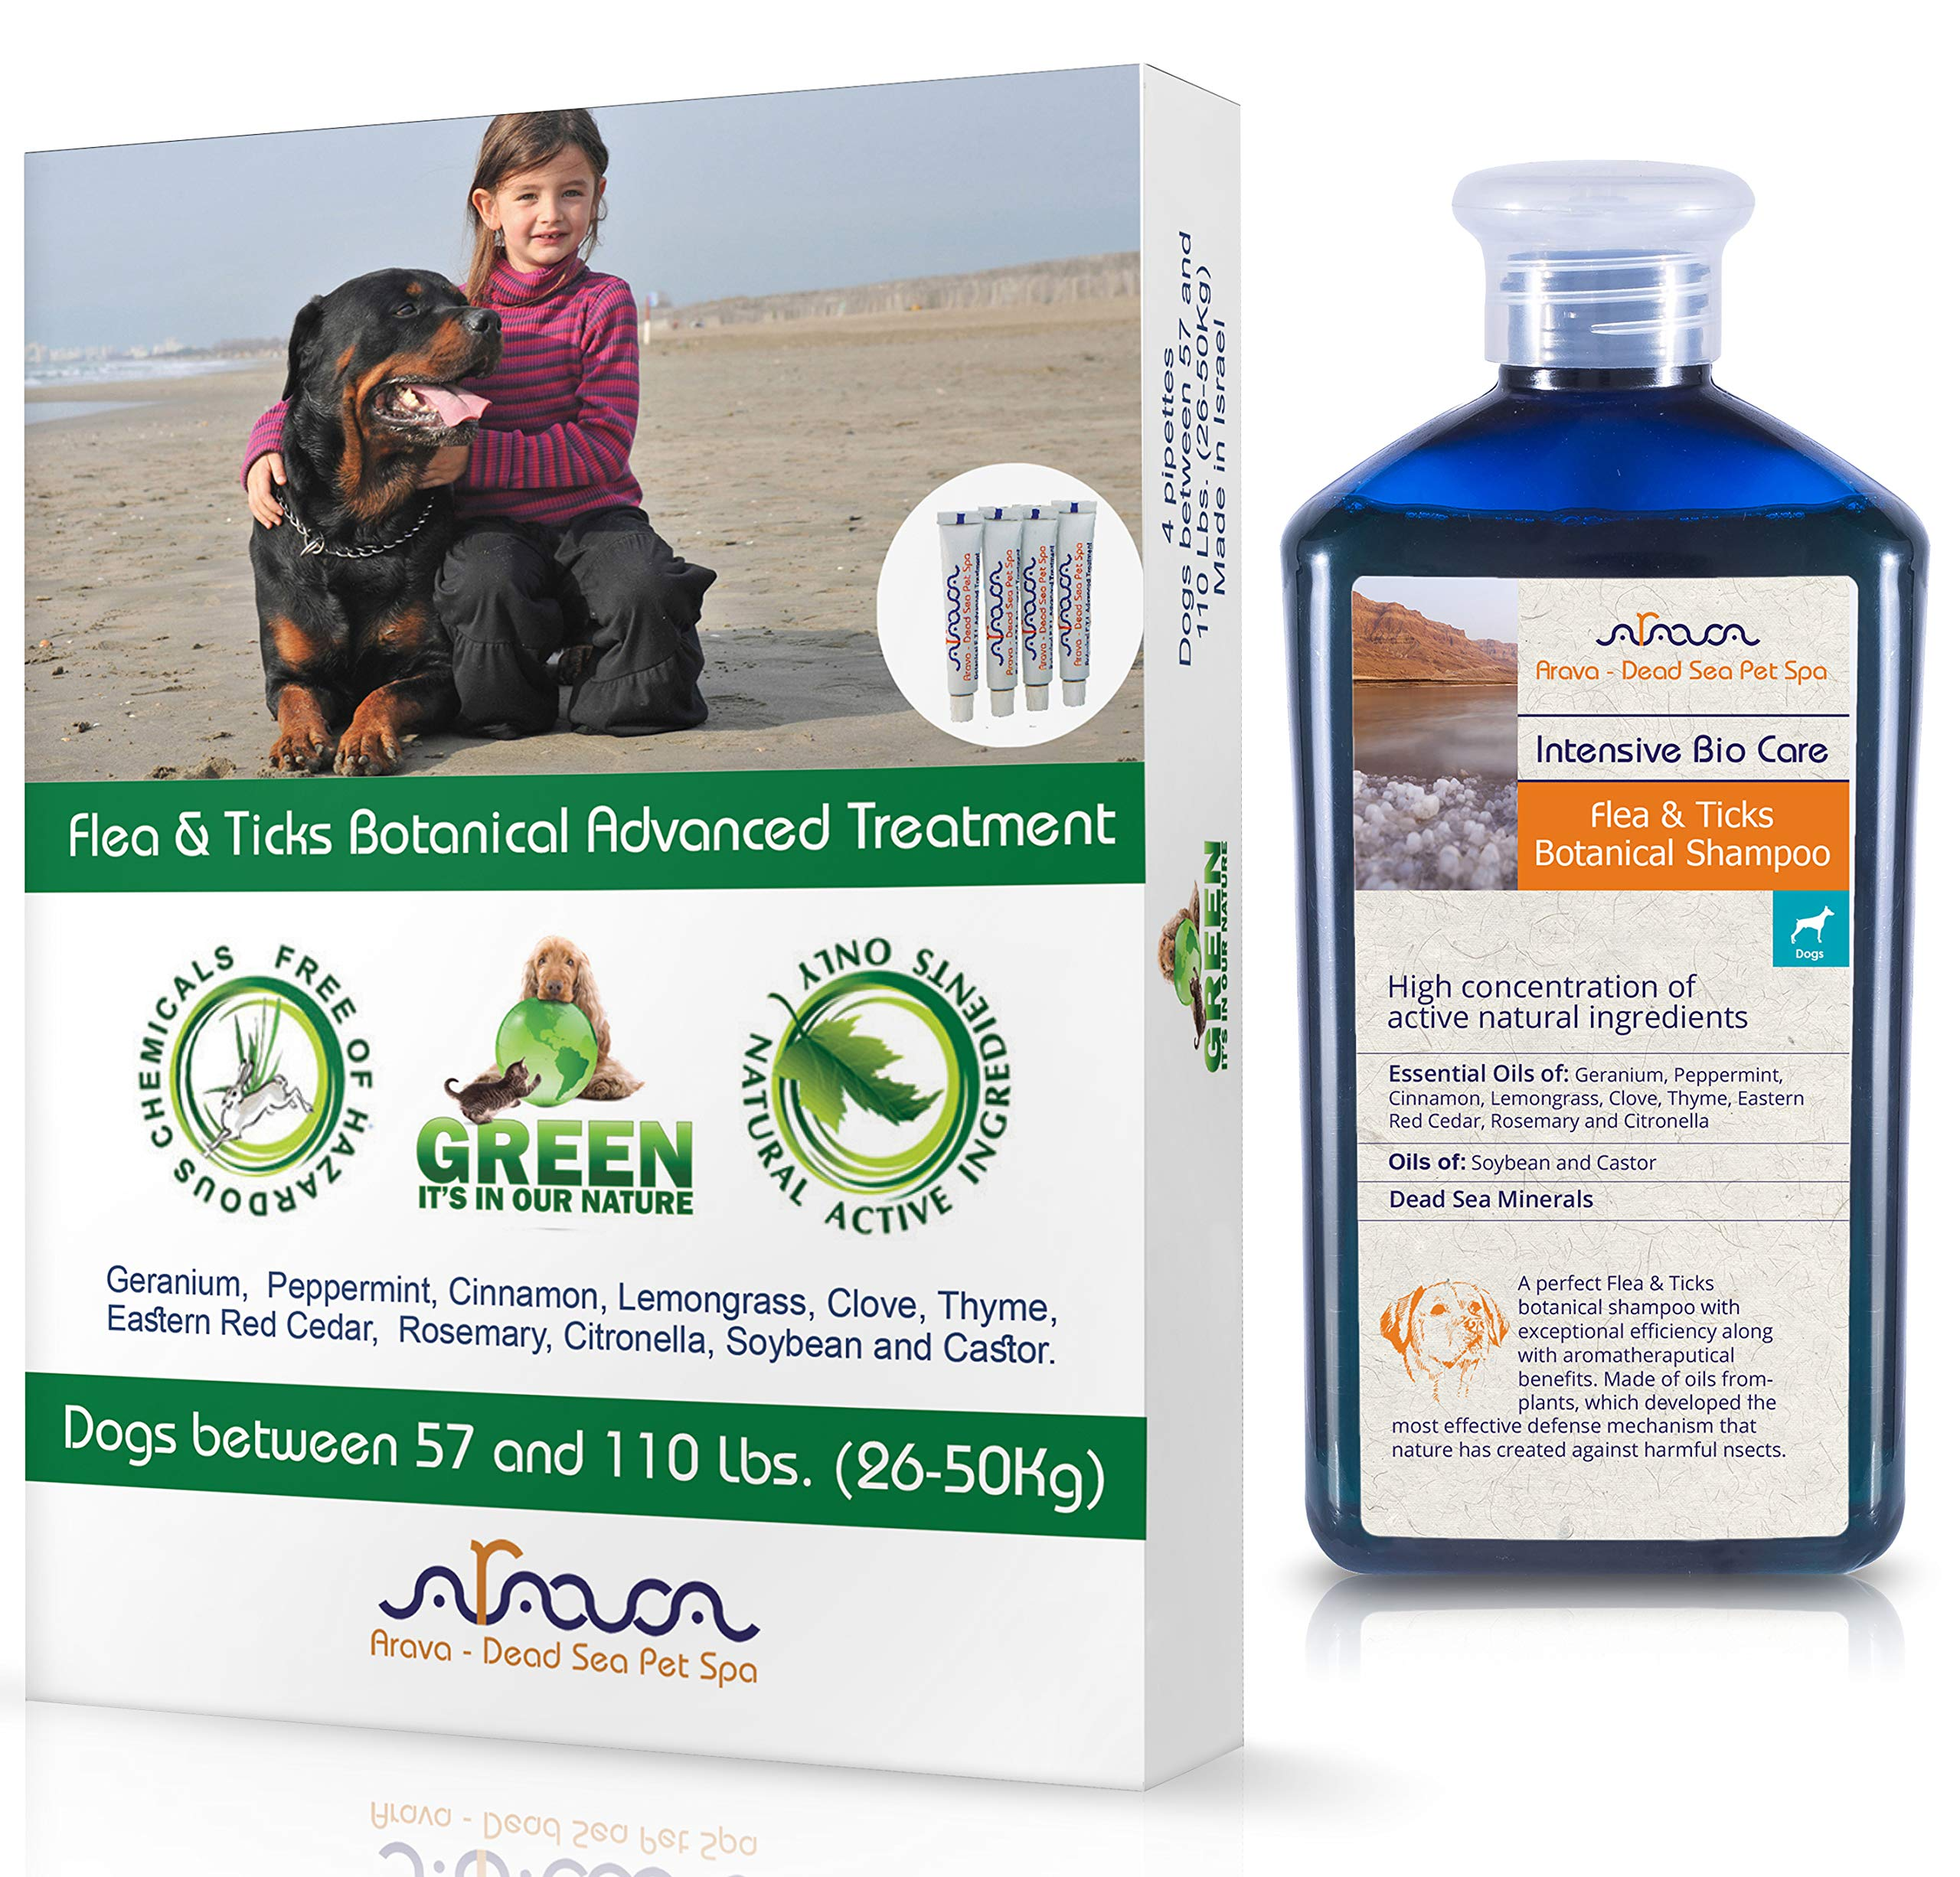 Arava Natural Flea & Tick Prevention for Dogs & Cats - 4-Doses - 100% Safe Flea & Tick Control - Repels Pests with Natural Oils - Safe on Skin and Coats - Enhanced Defense & Prevention (4 Variations) by Arava - Dead Sea Pet Spa